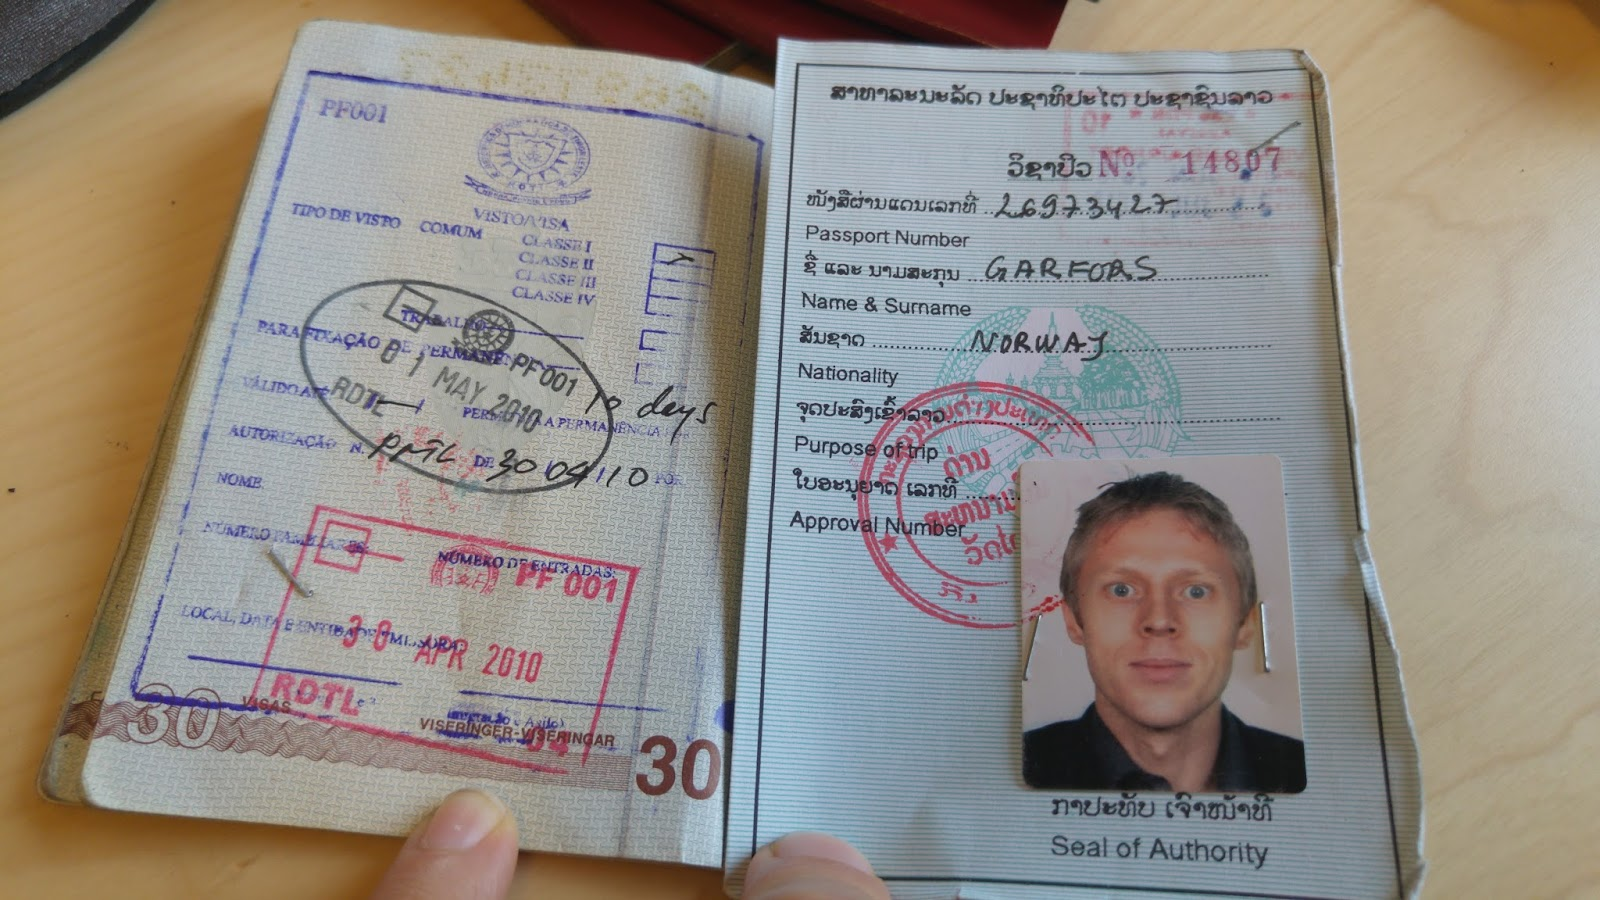 My Laos Passport Inside Norwegian One And A Form Of Stamp From EAST TIMOR 1 On The Left Never Mind Awful Photograph By Way